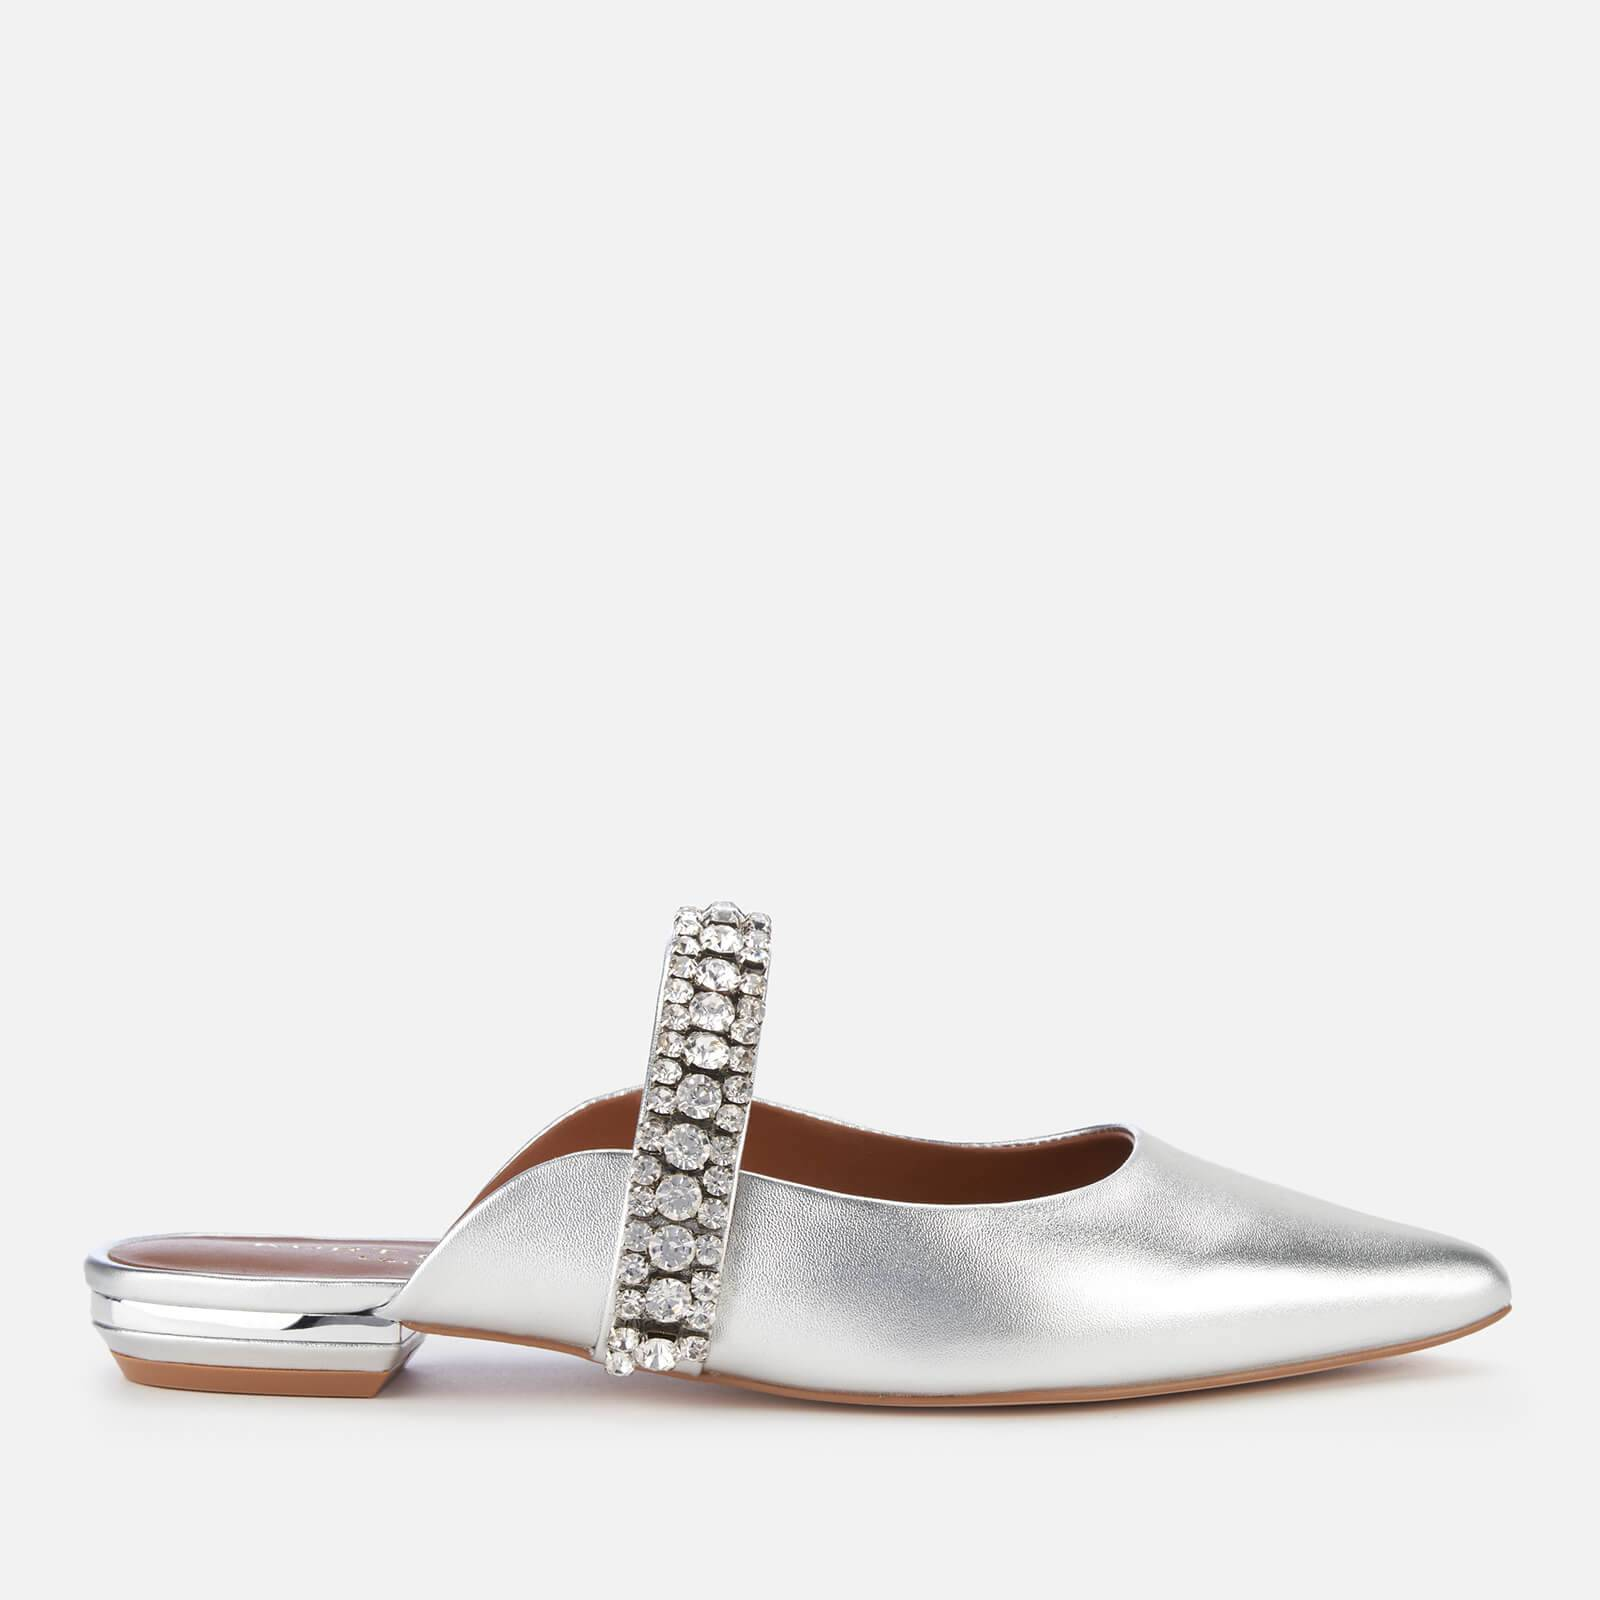 Kurt Geiger London Women's Princely Leather Pointed Mules - Silver - UK 7 - Silver